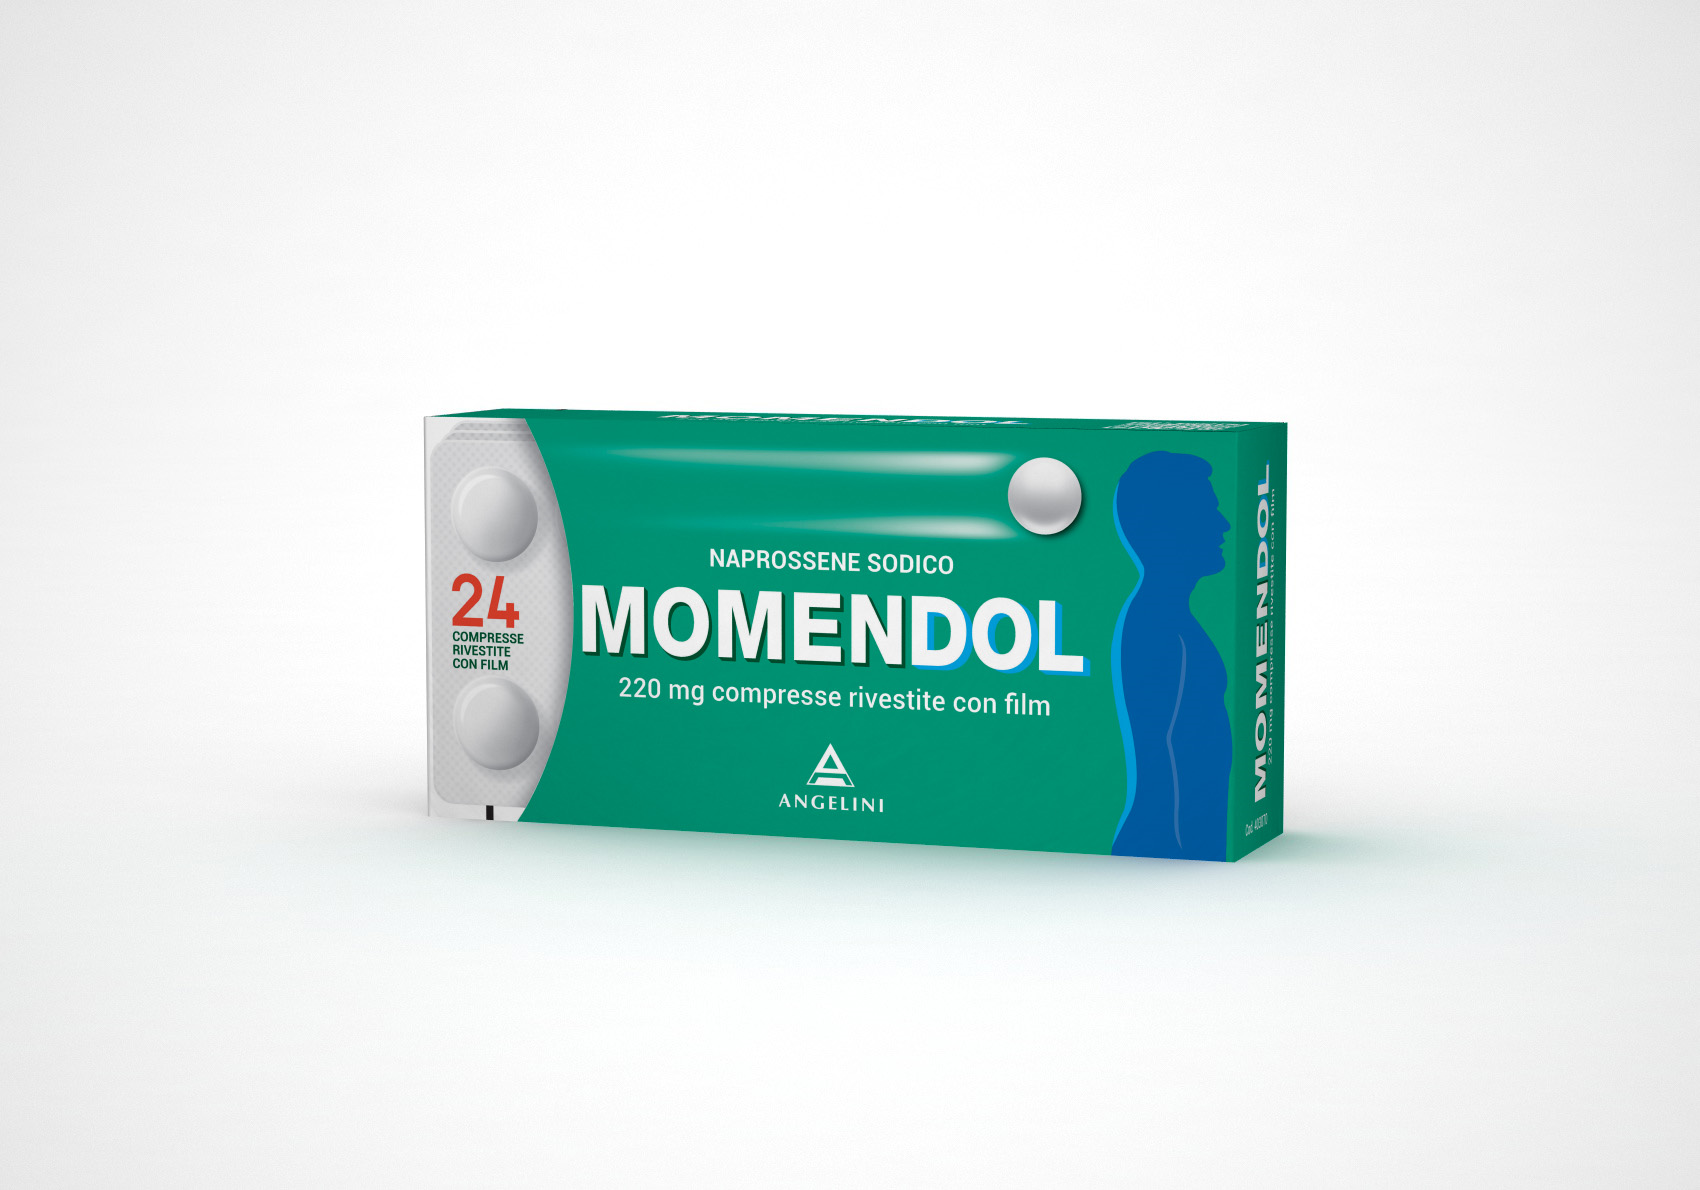 MomenDOL 220mg Naprossene Sodico 24 Compresse Rivestite - Arcafarma.it